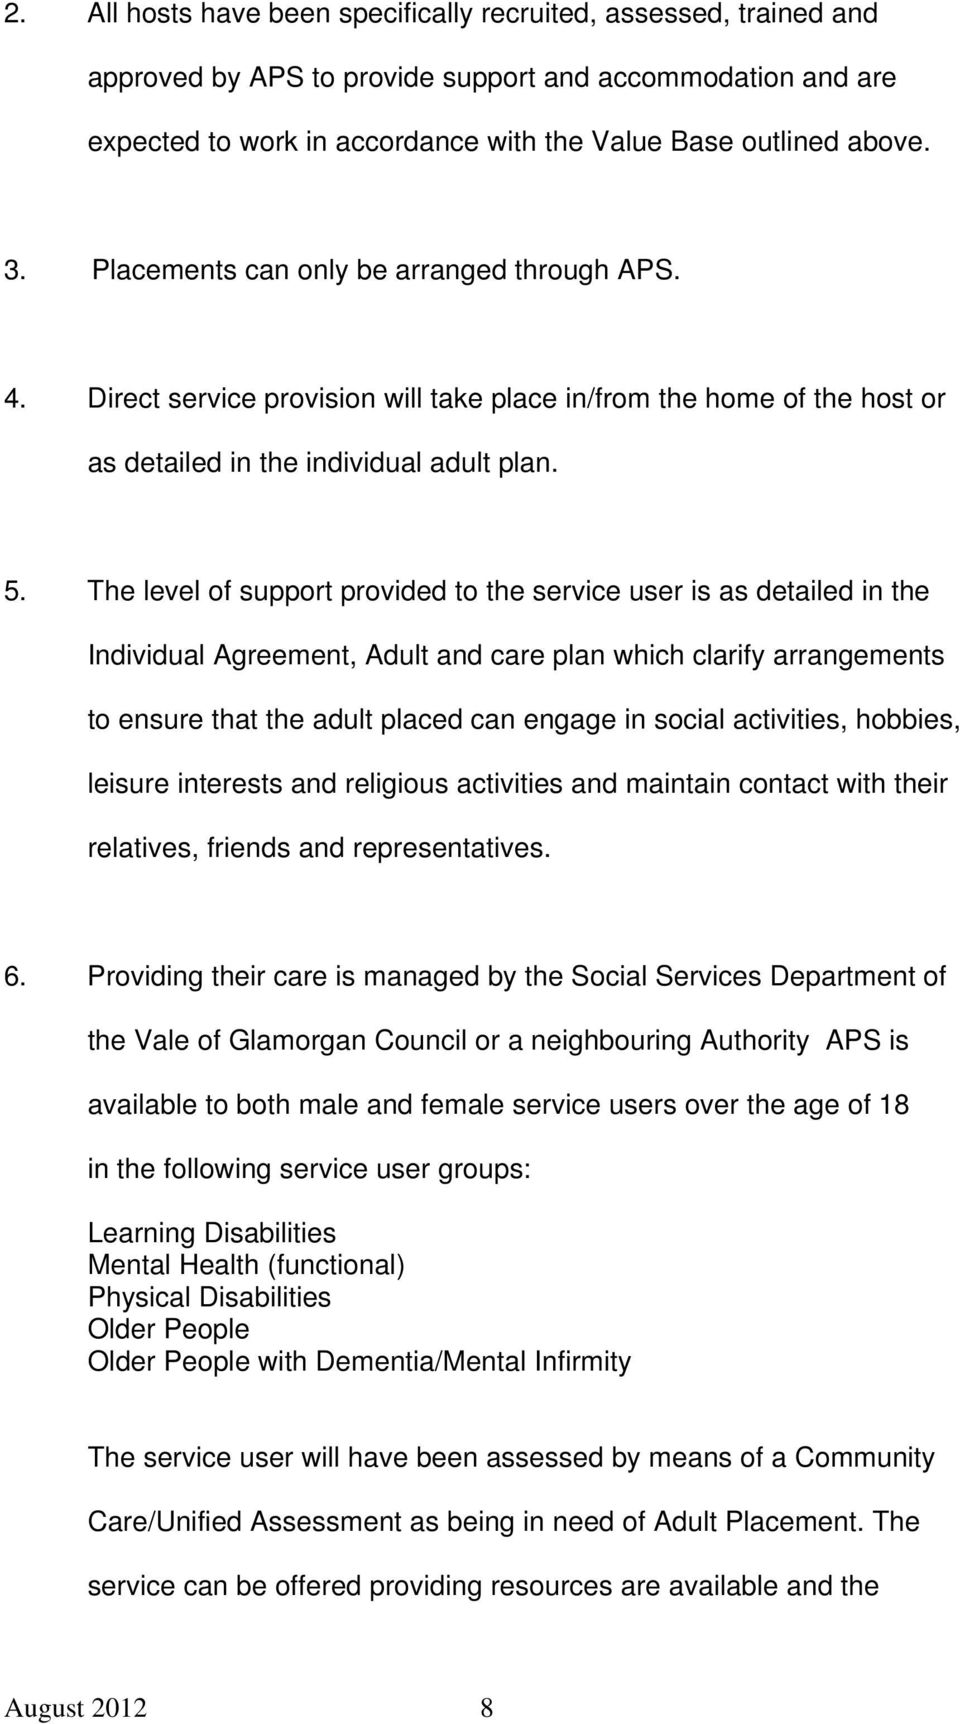 The level of support provided to the service user is as detailed in the Individual Agreement, Adult and care plan which clarify arrangements to ensure that the adult placed can engage in social